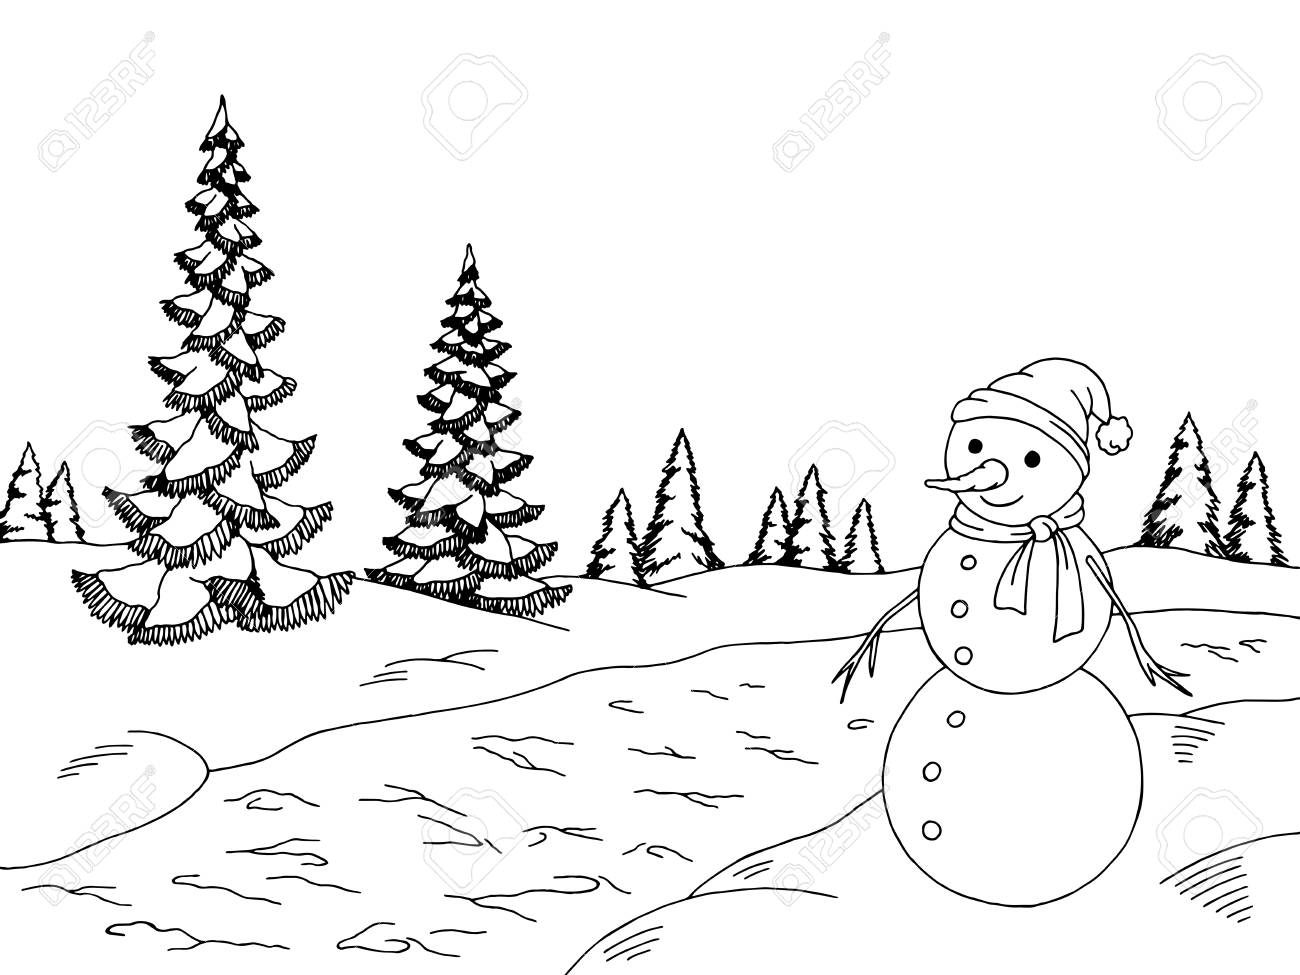 Winter Season Winter Clipart Black And White.